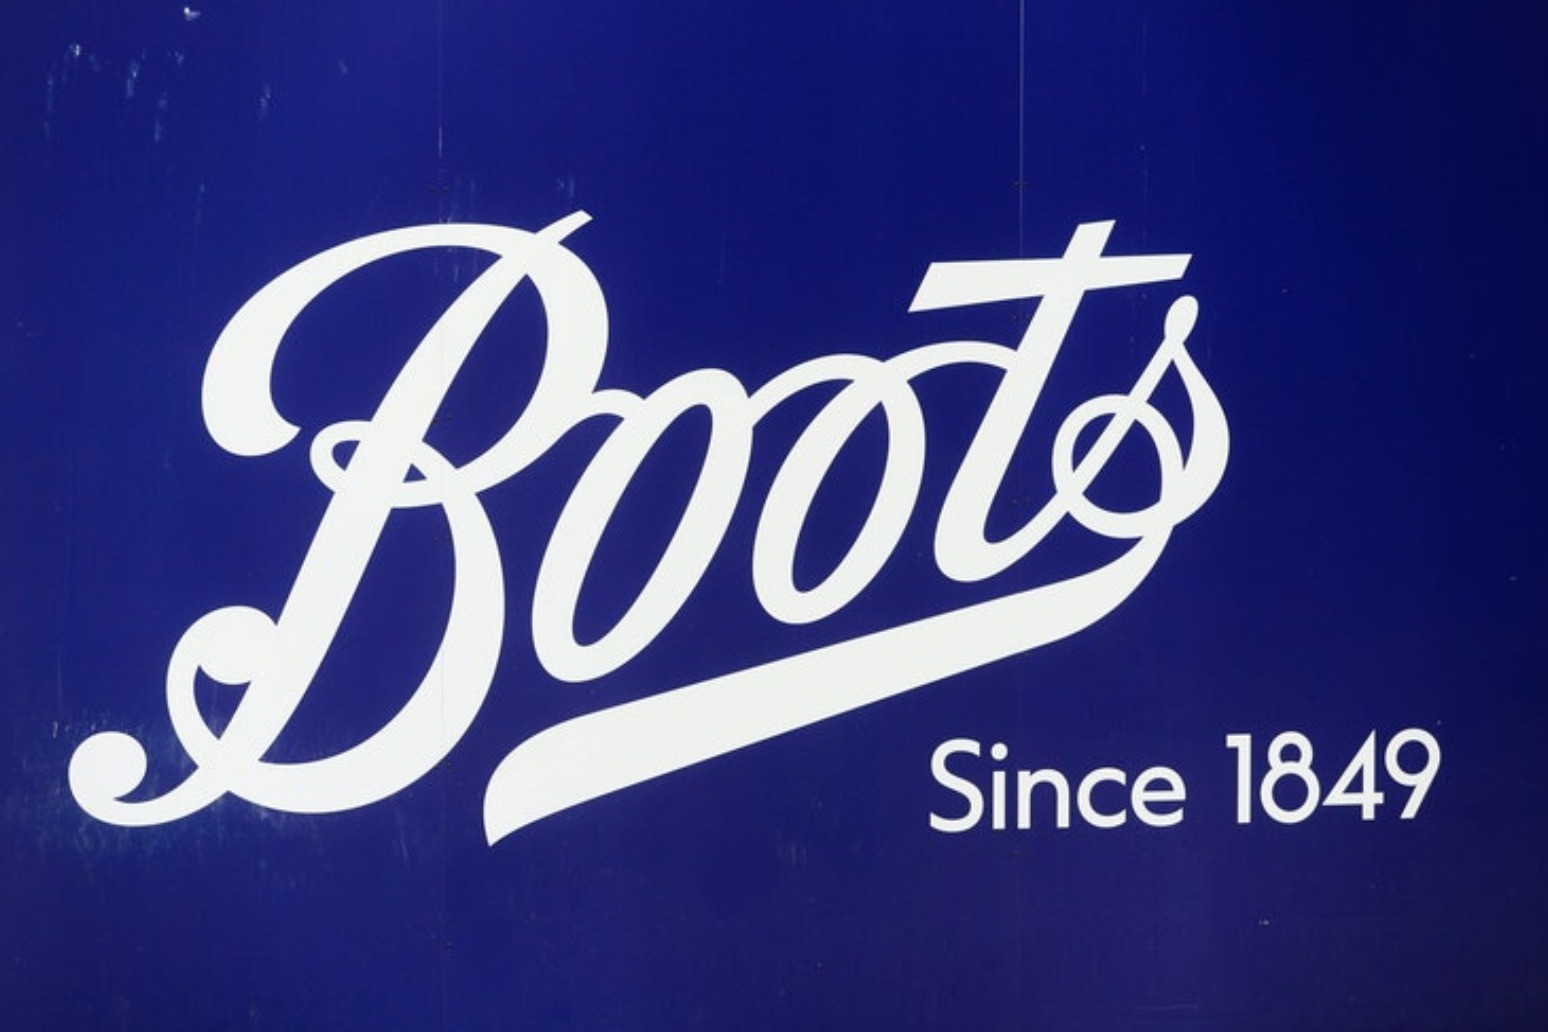 Boots to unveil in-store rapid Covid-19 testing service